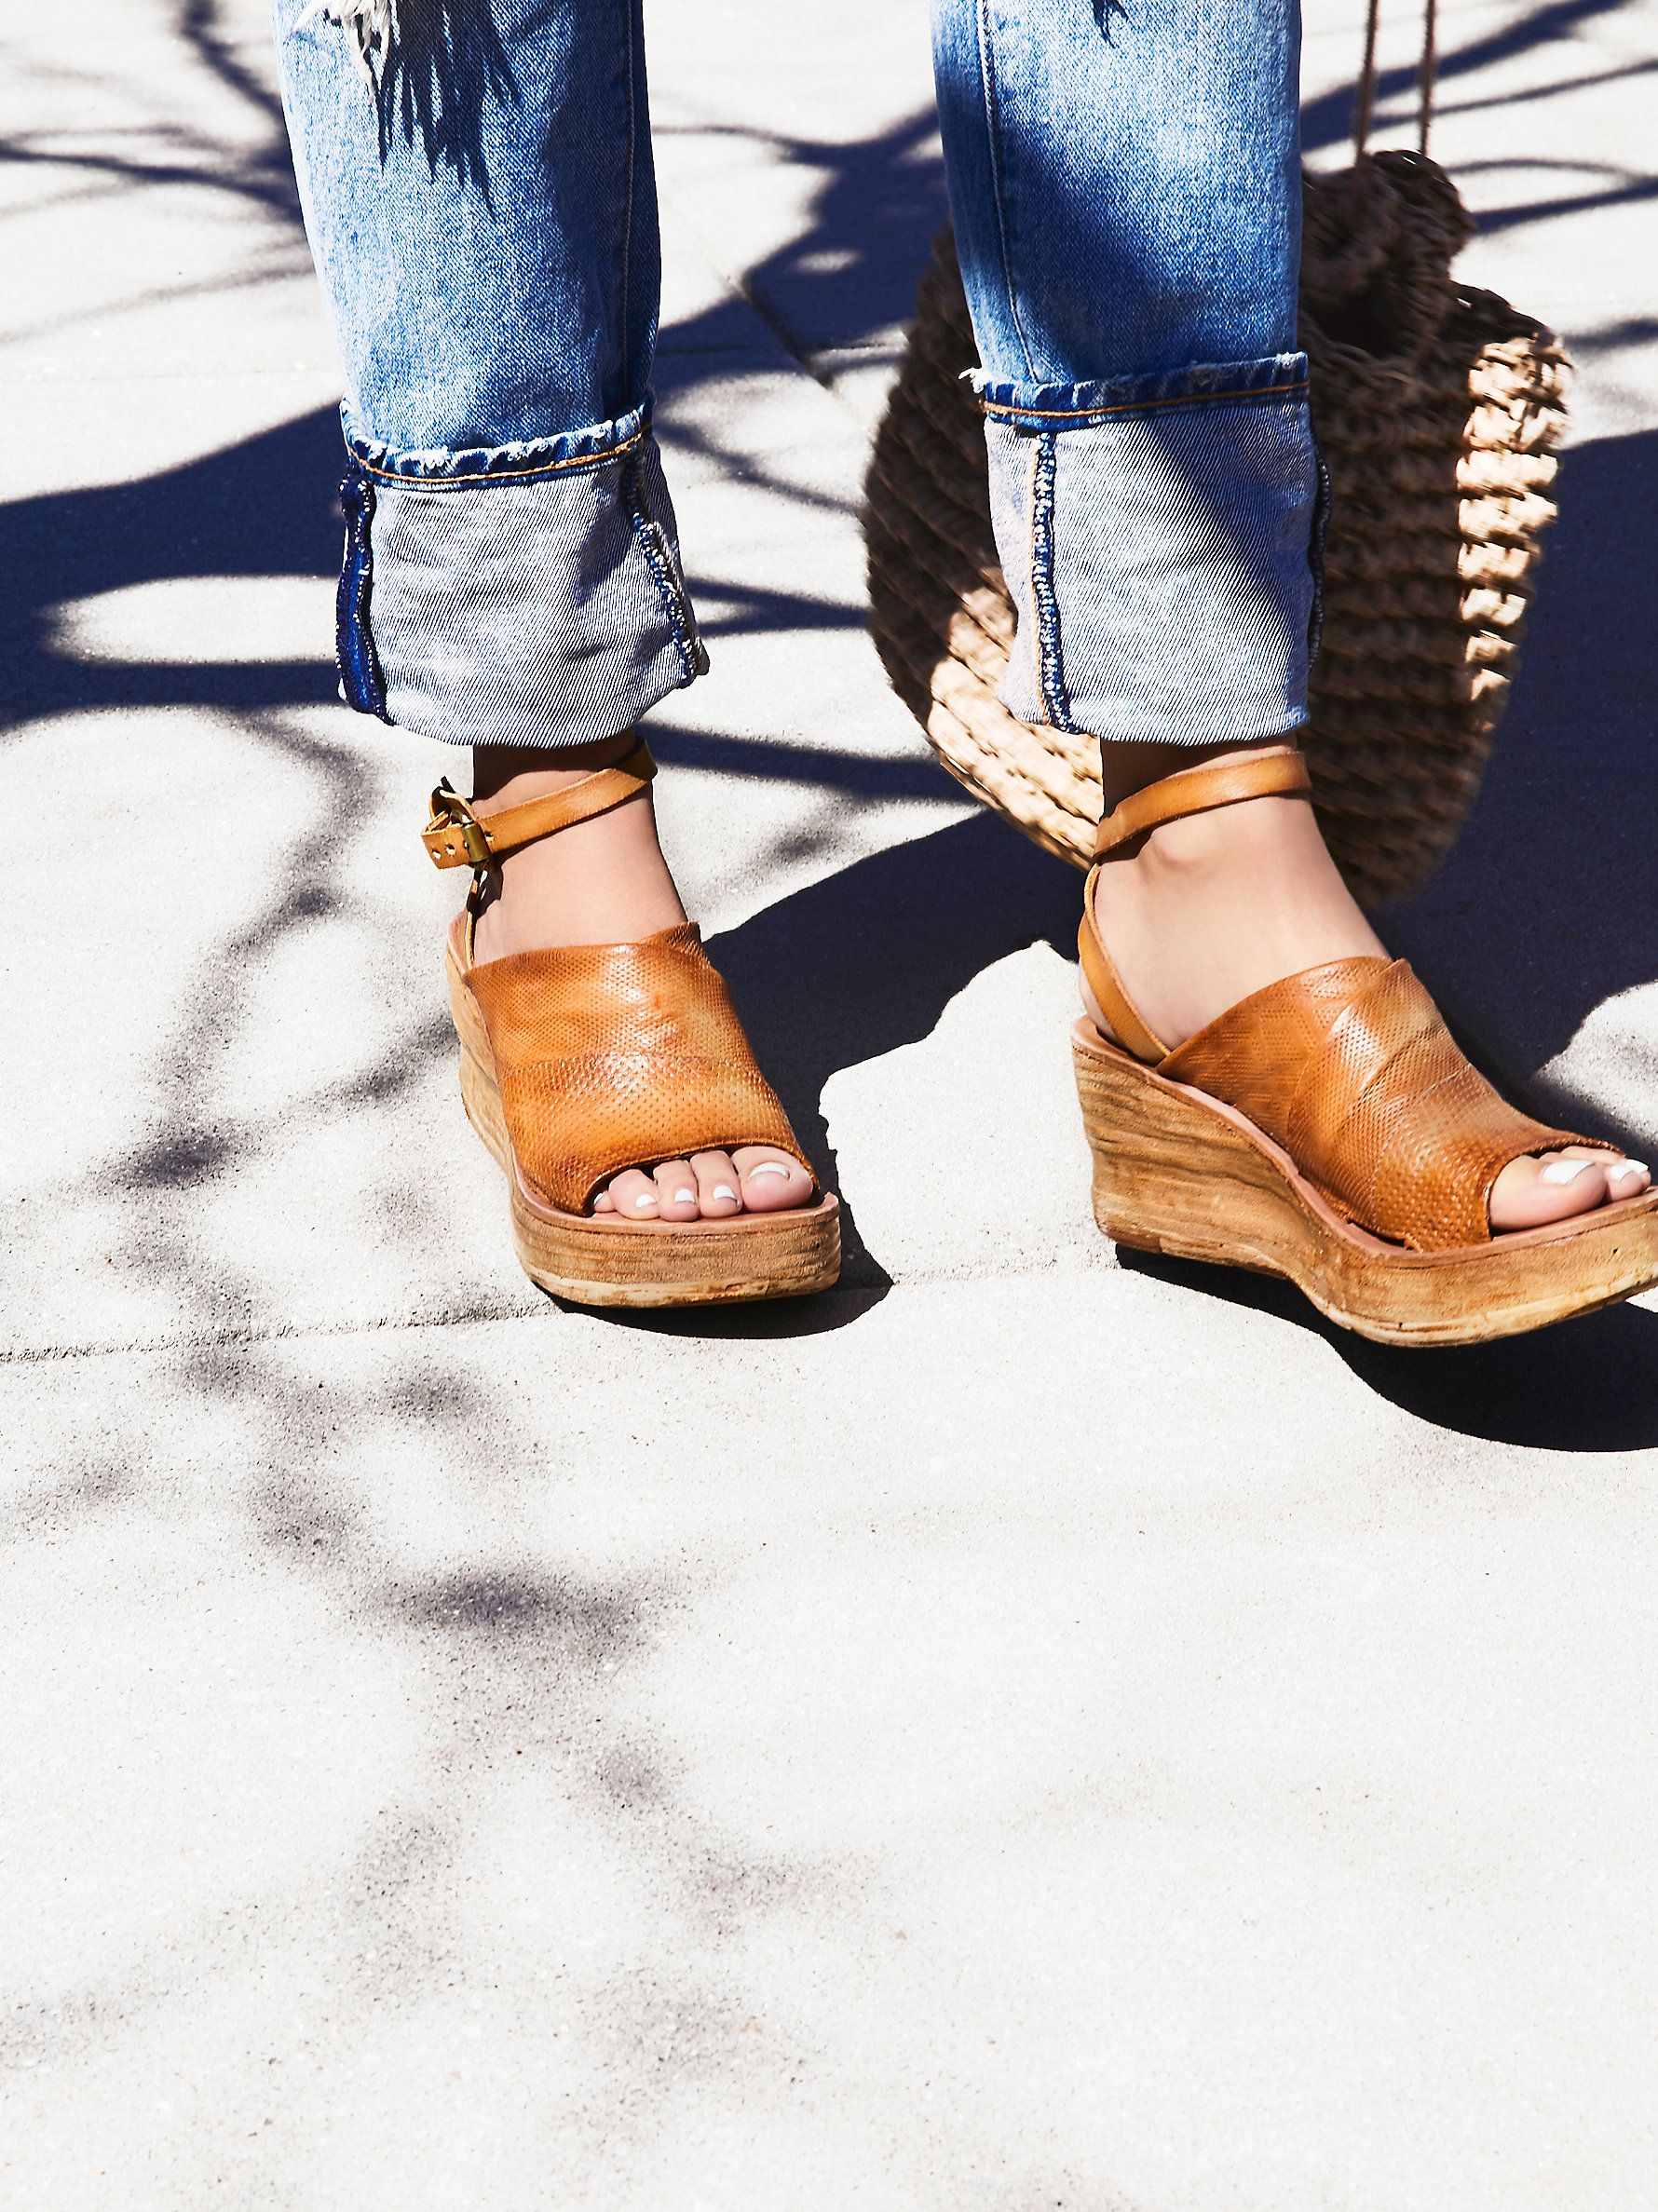 Niall Wedge   Leather wedge featuring an adjustable strap that wraps  effortlessly around the ankle. 6153f45755